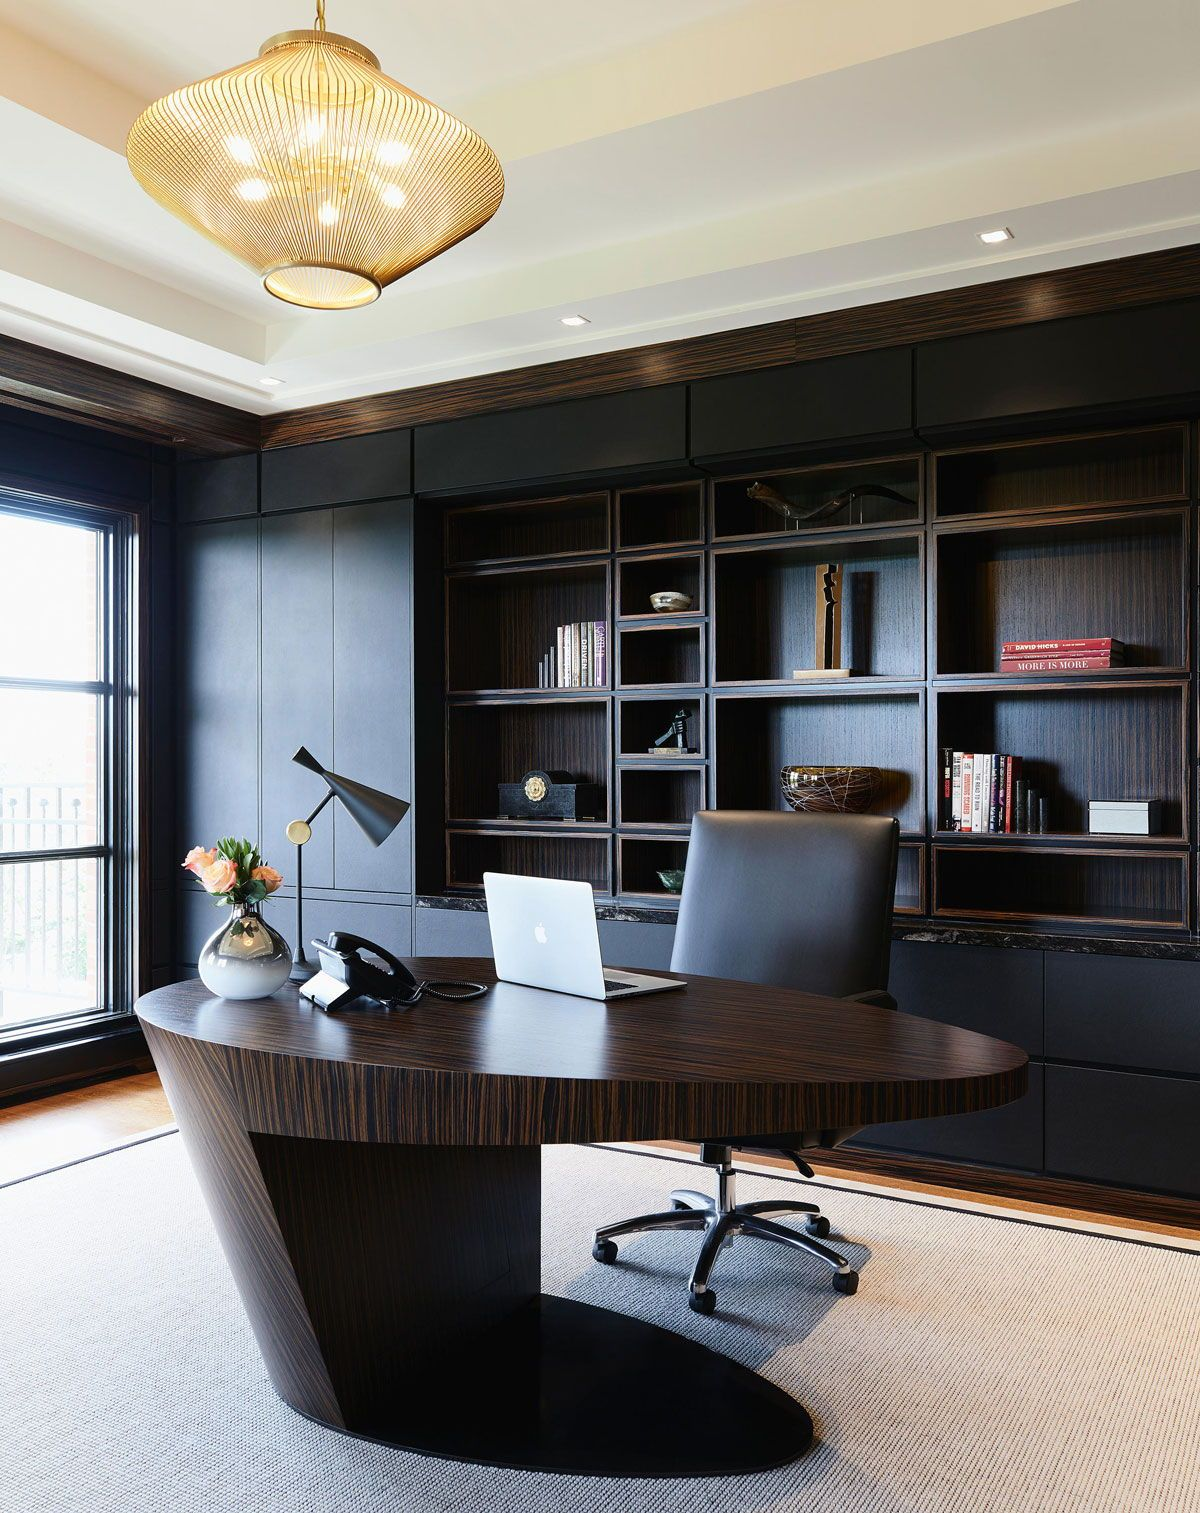 Dailyproductpick The Orbit Desk By Douglas Design Studio Uses Macassar Ebony For A Striking Modern Office Interiors Home Office Design Modern Home Office Desk